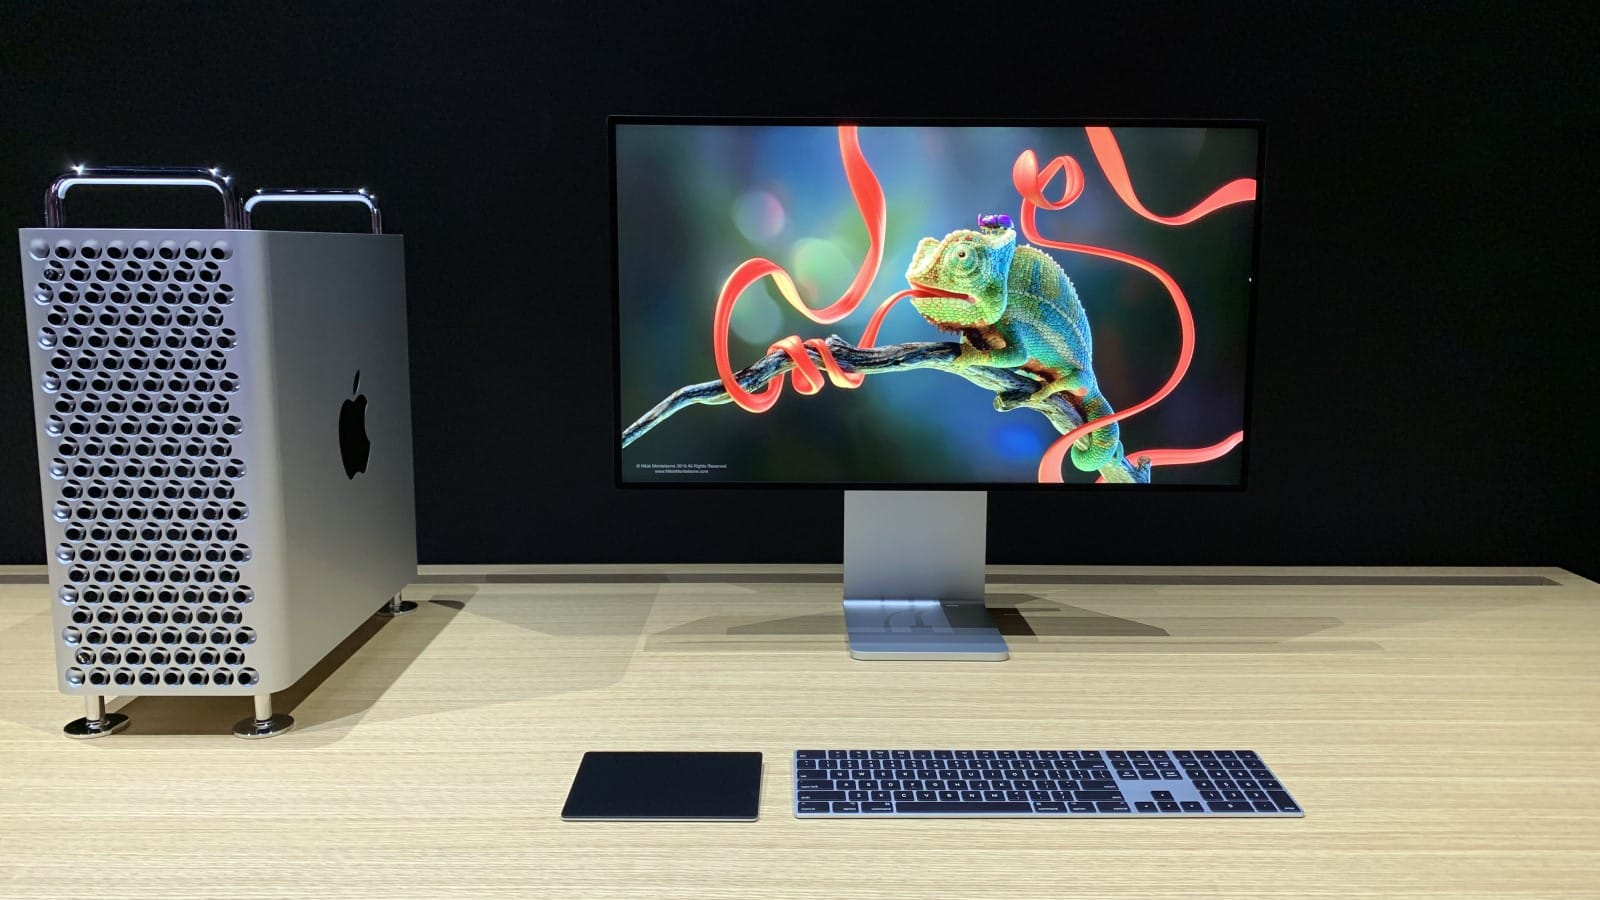 apple pro display xdr on desk with mac pro